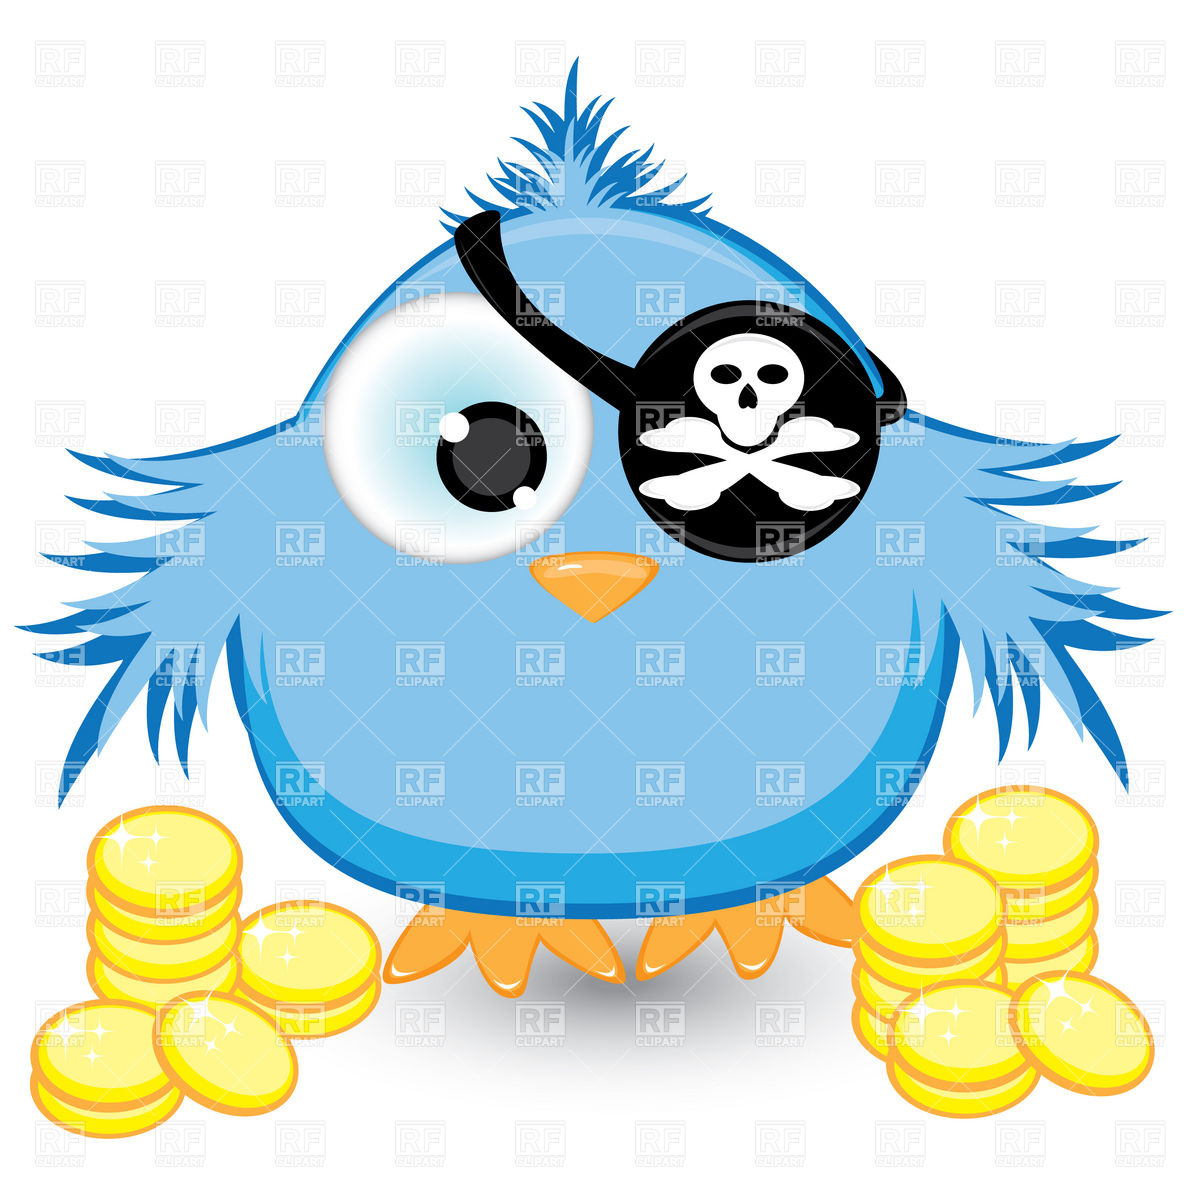 Cartoon fledgling with pirate blindfold Vector Image #8328.